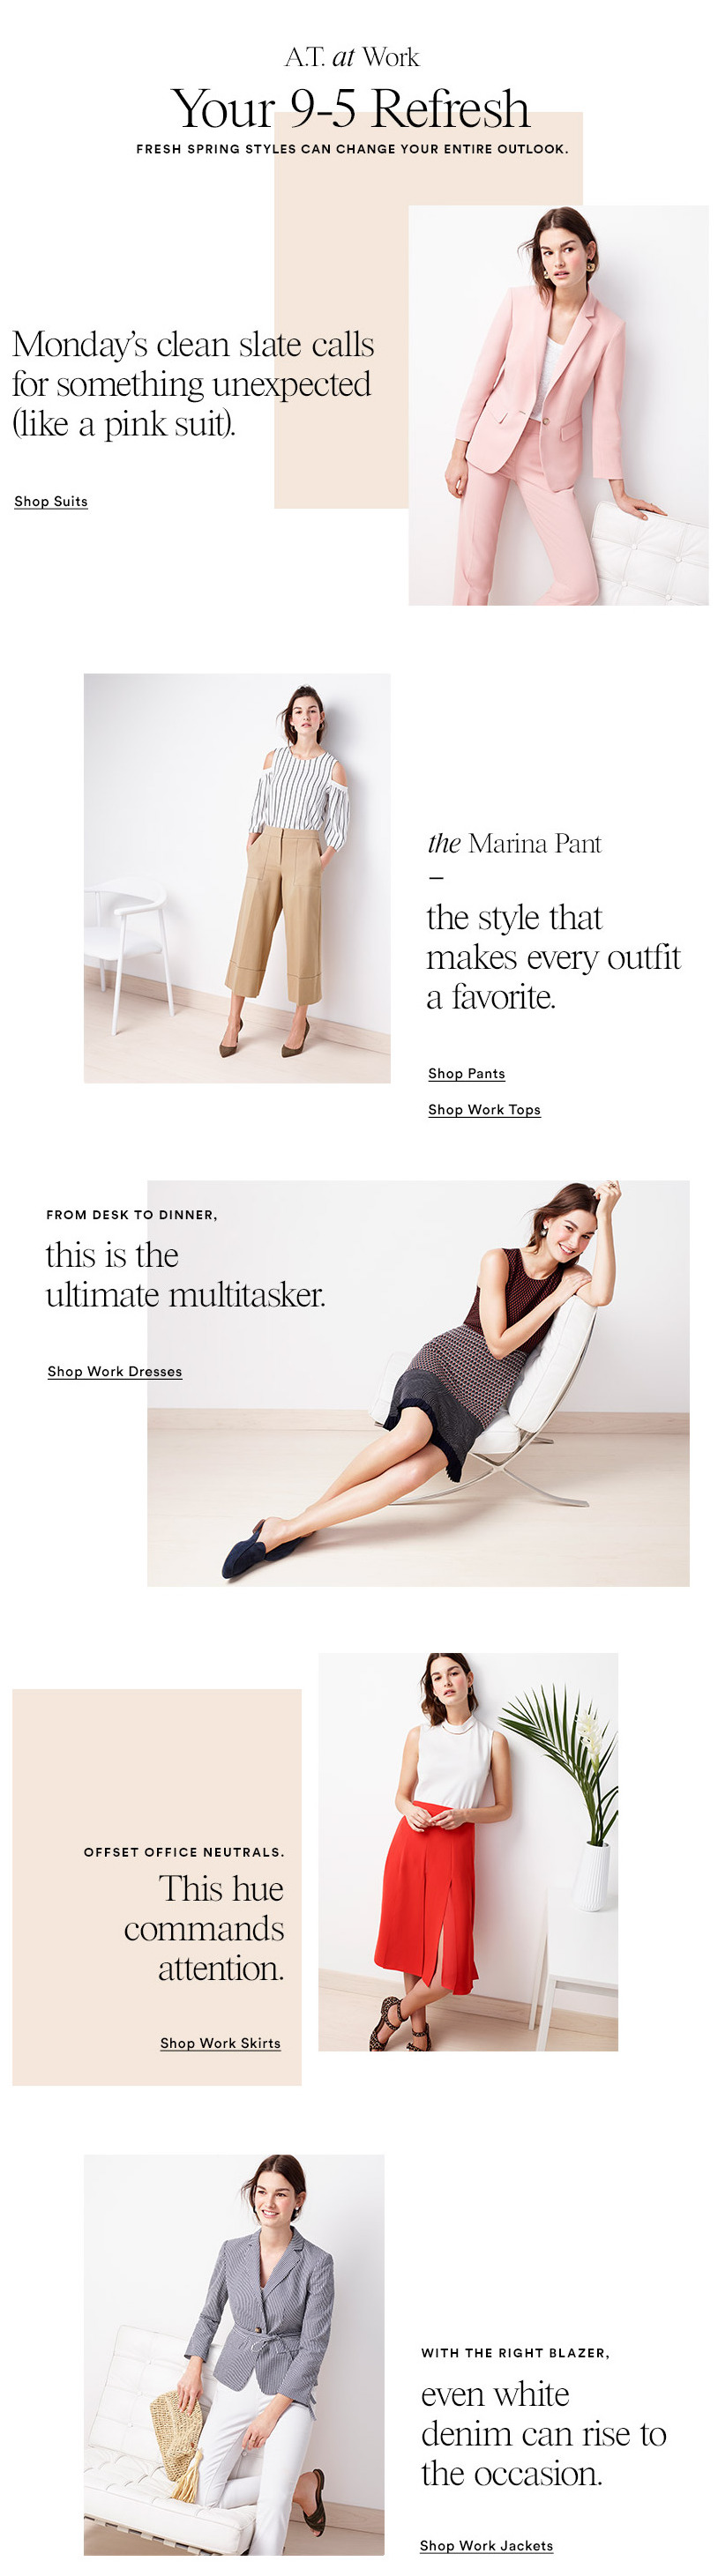 FireShot Capture 3 - What to Wear to Work - Wear to Wor_ - https___www.anntaylor.com_work_cat2100002.jpg